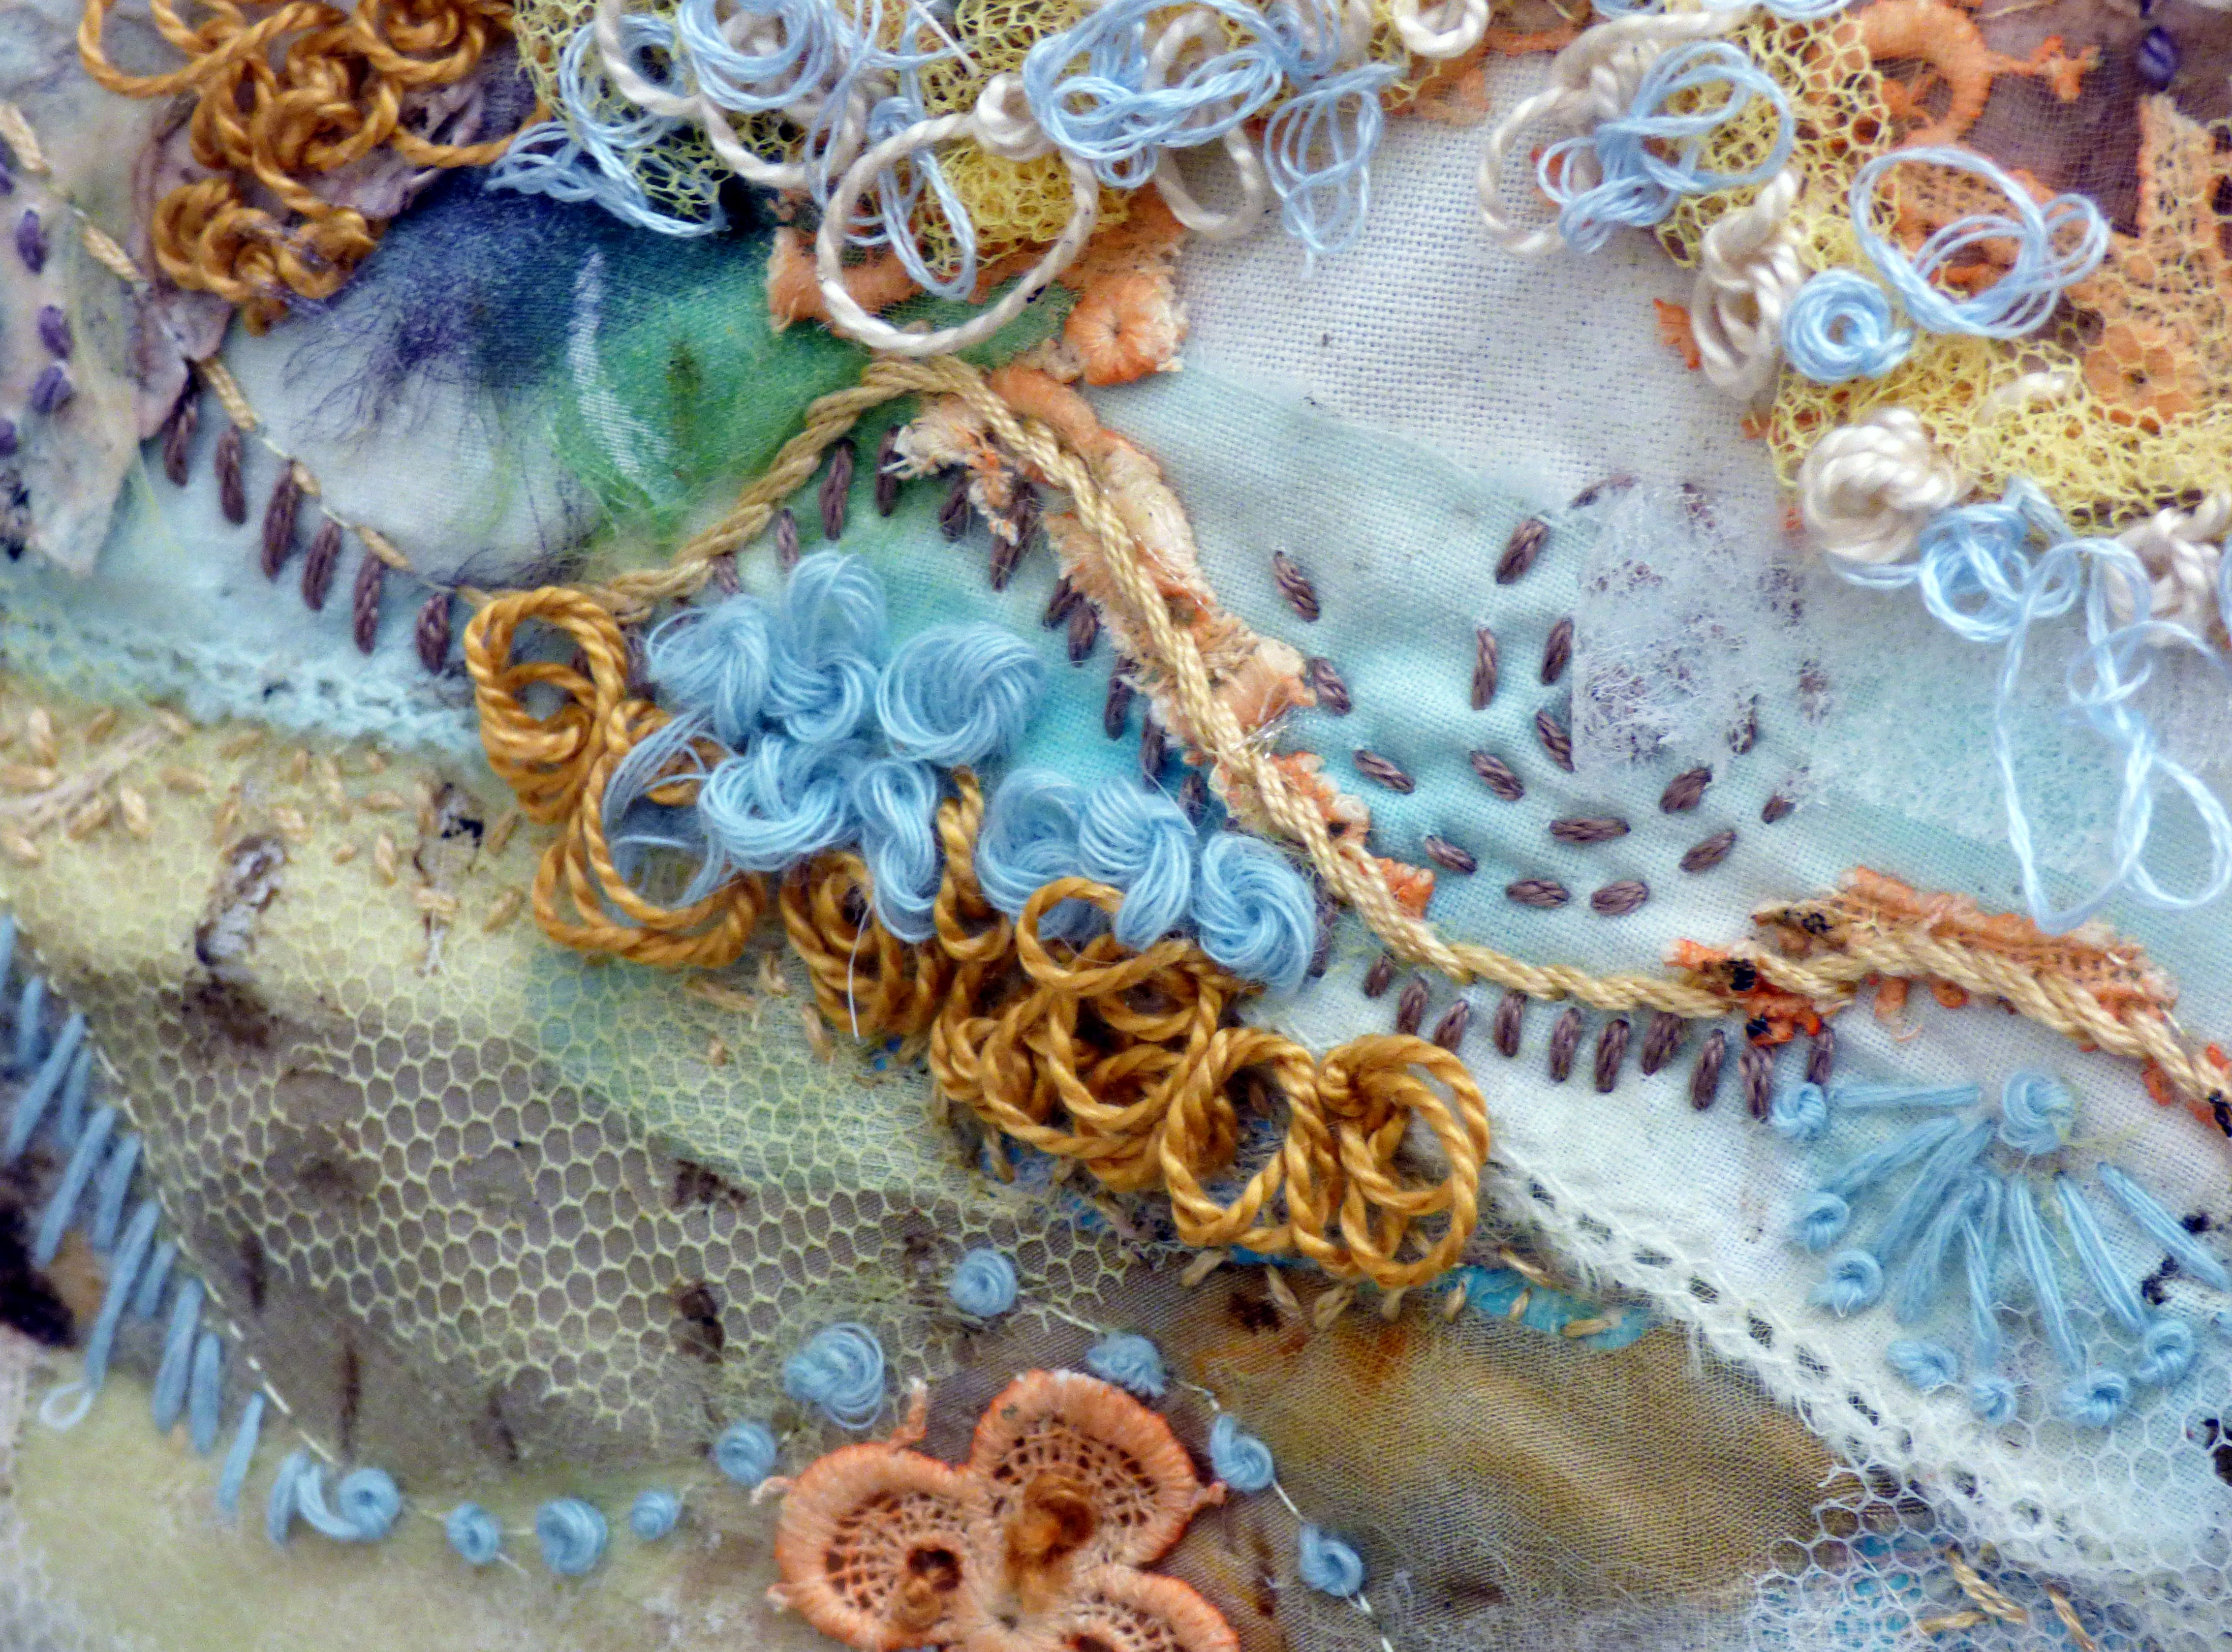 ( detail ) ON THE EDGE OF THE TIDE 2 by Elsa Buch, Textile 21, Aug 2018. Textiles and mixed media